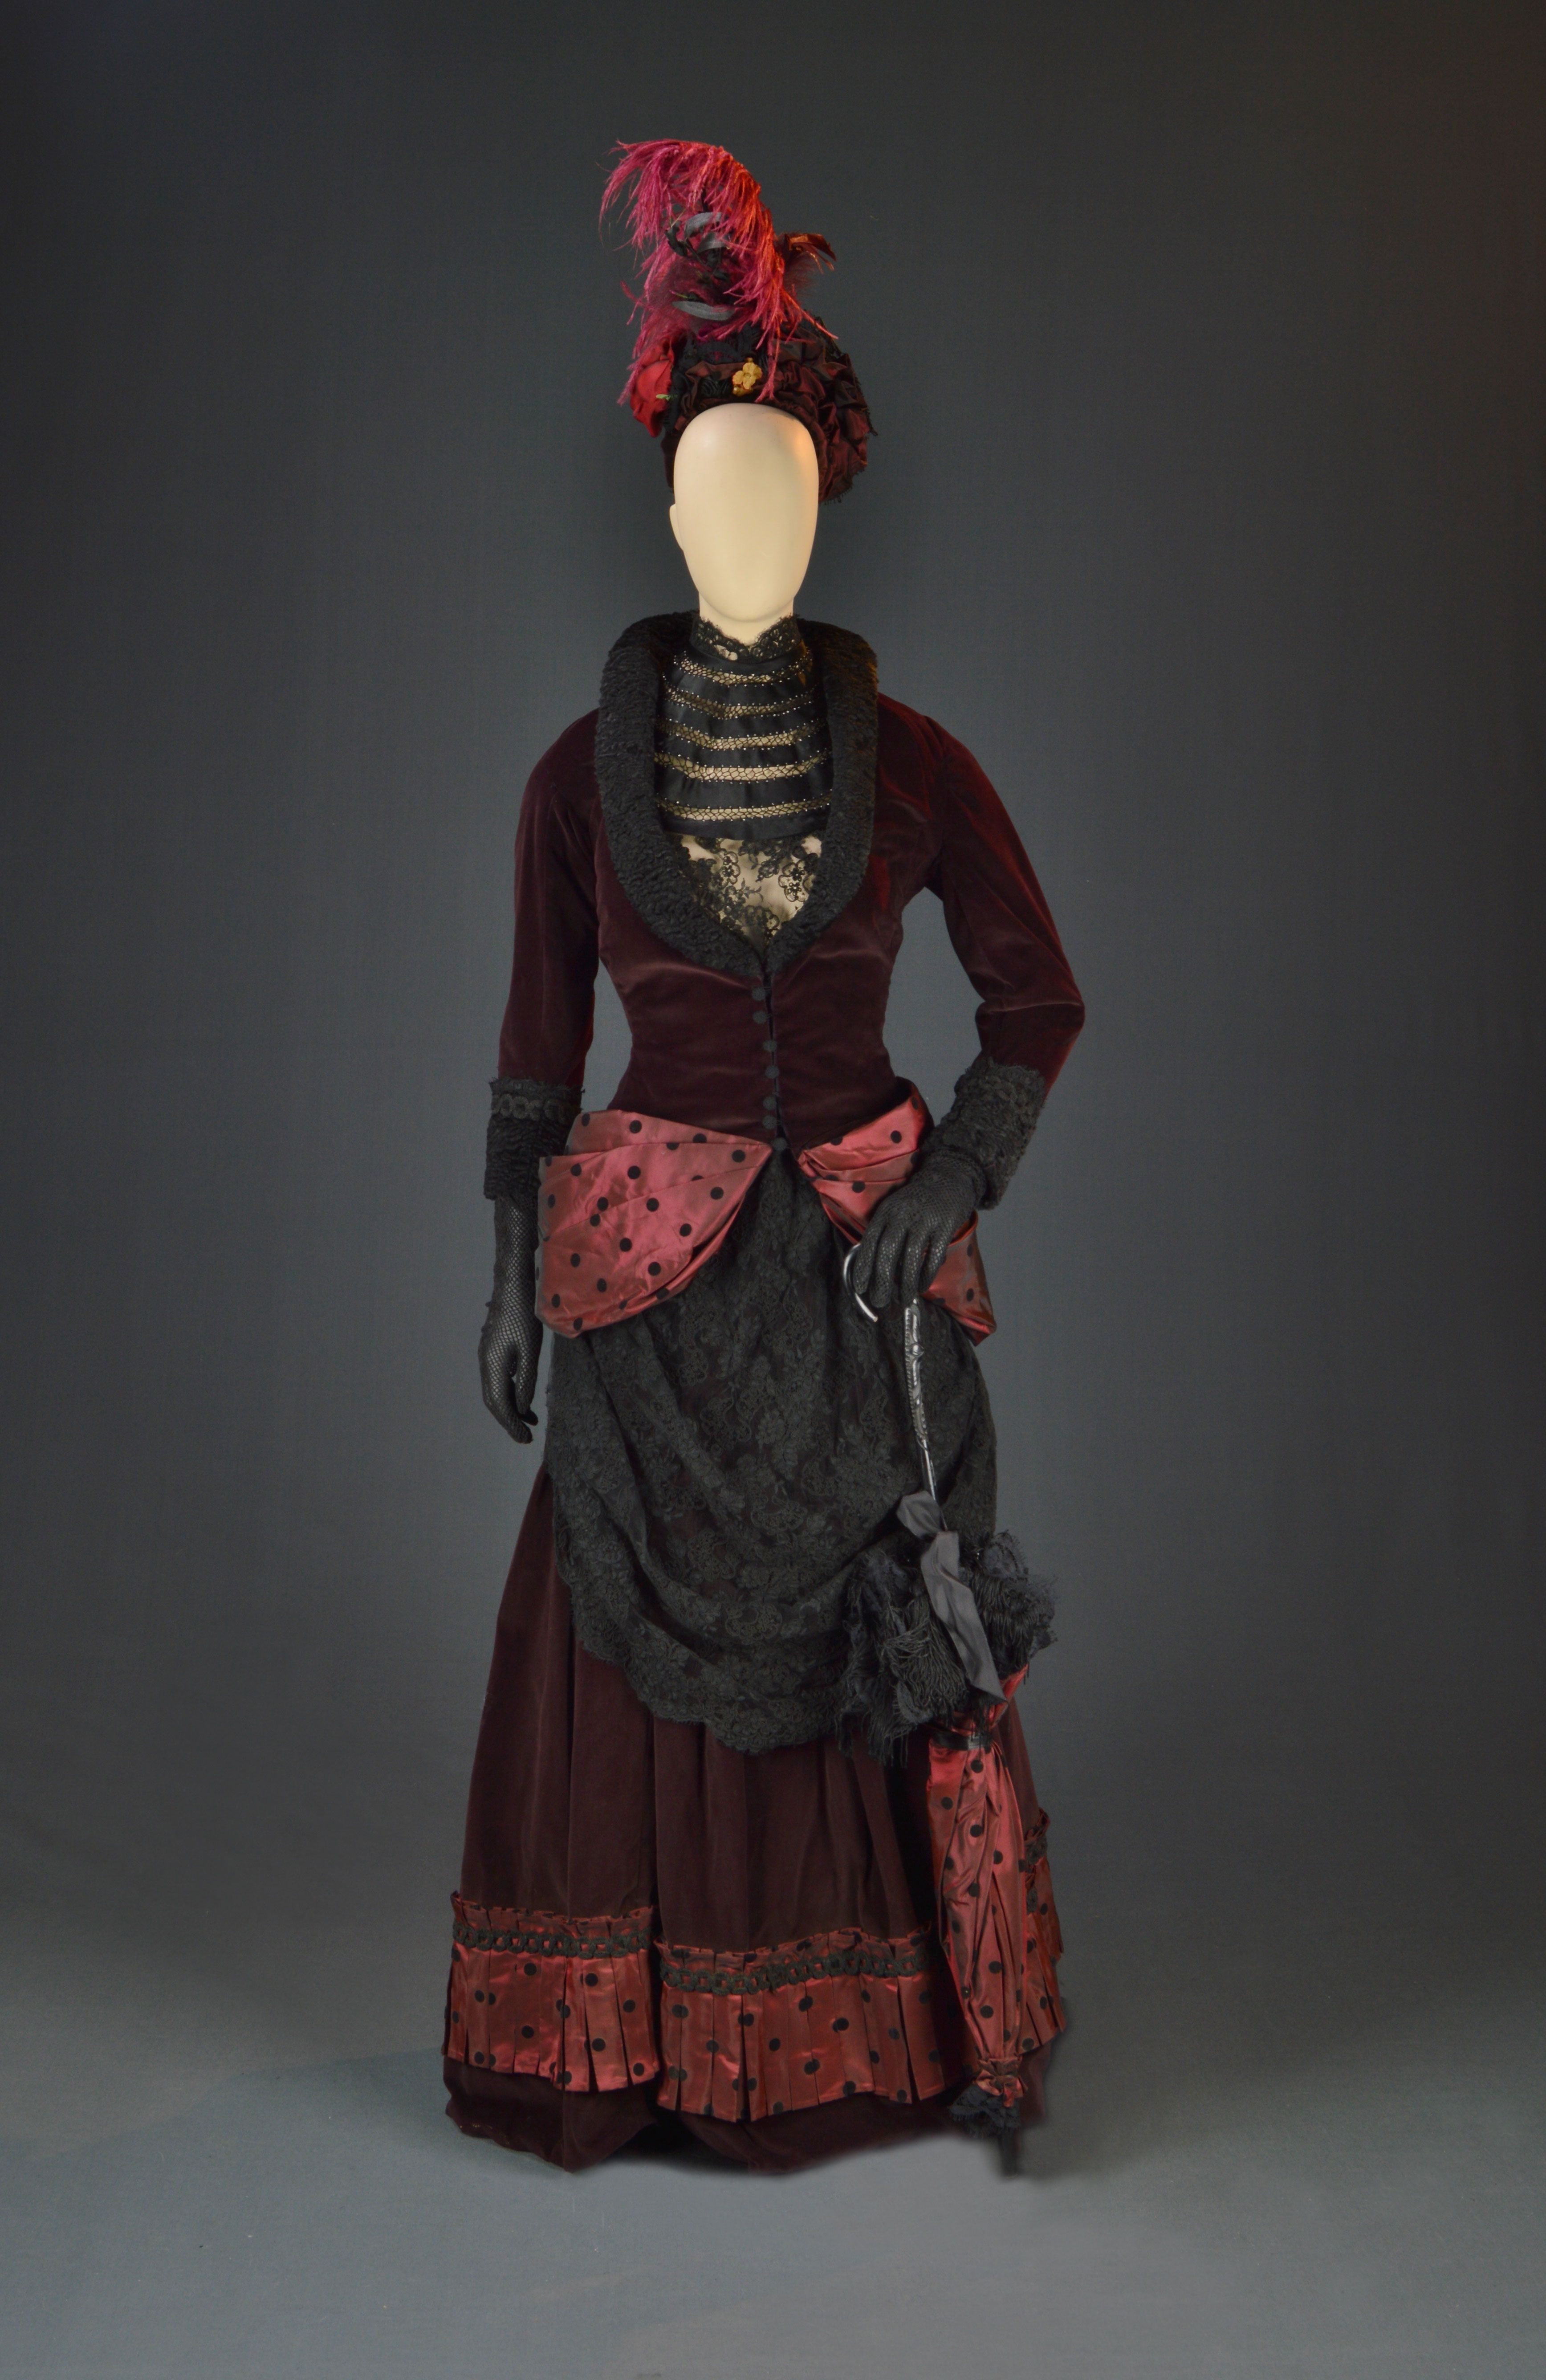 """Jenny Wright, """"Young Guns II,"""" Morgan Creek, 1990, Designed by Judy L. Ruskin, The Collection of Motion Picture Costume Design: Larry McQueen"""